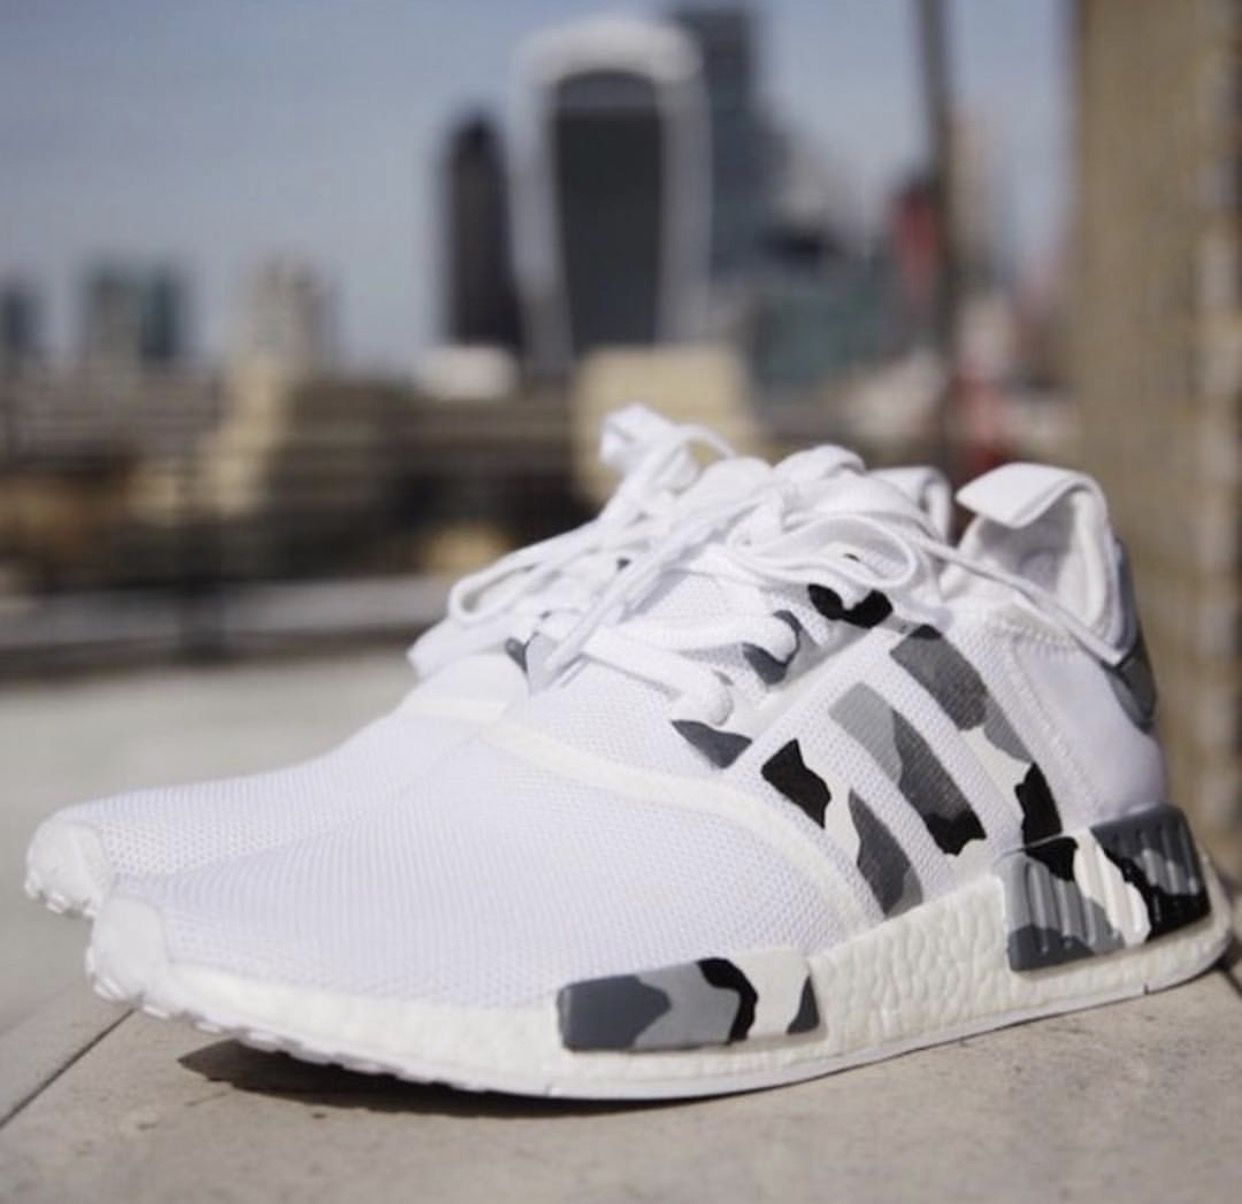 adidasfashion on Twitter. Adidas Nmd R1Adidas SneakersAddidas Shoes MensModest  ...